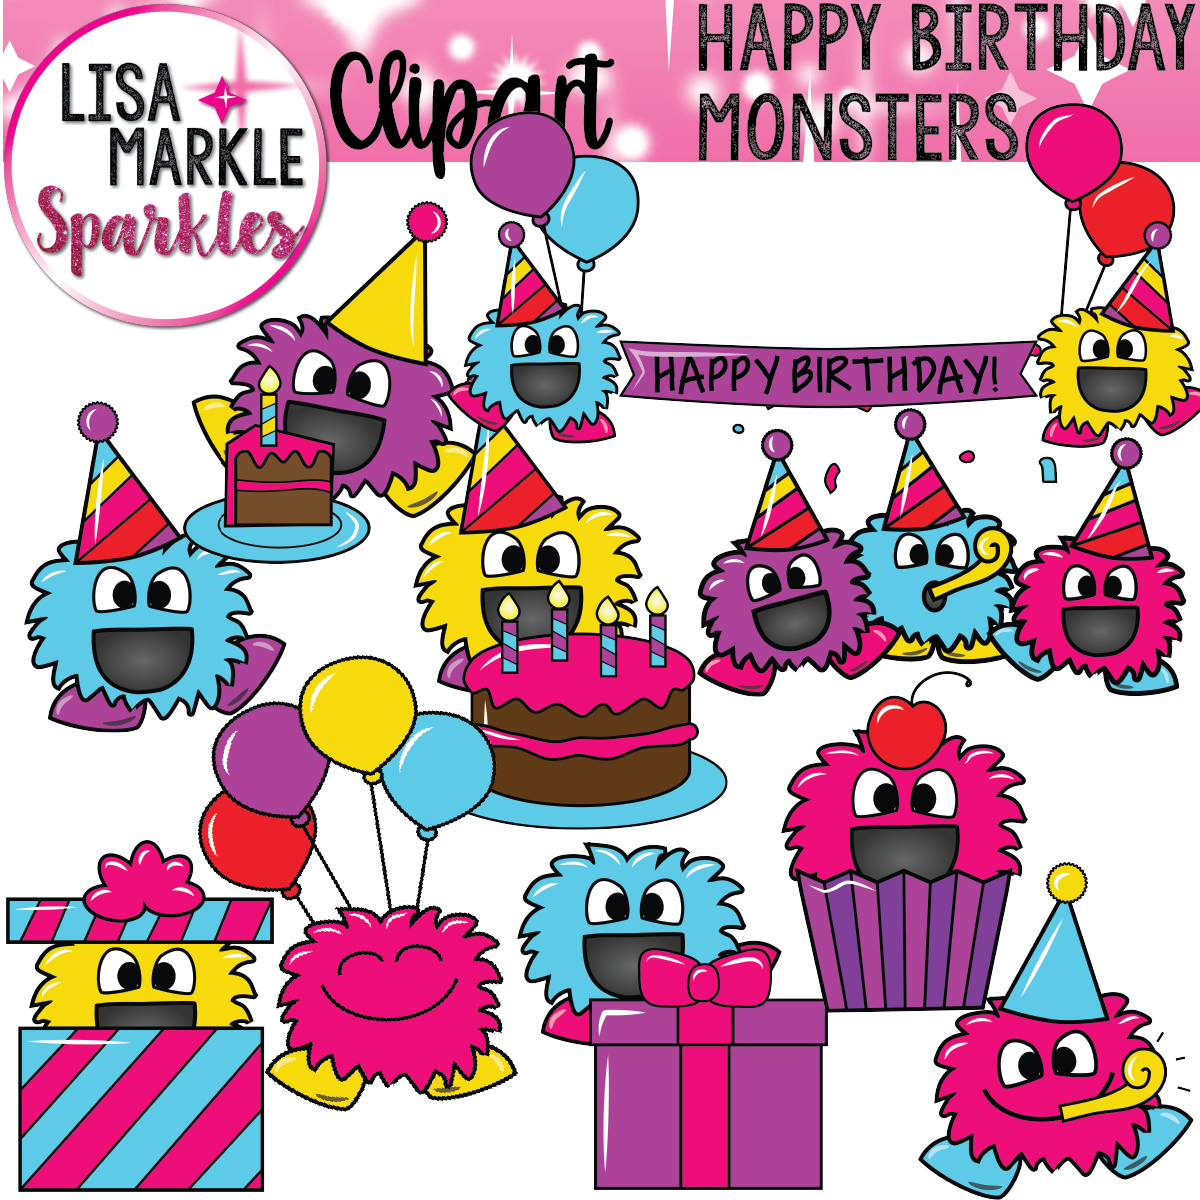 Happy birthday monsters banners. Celebrate clipart classroom